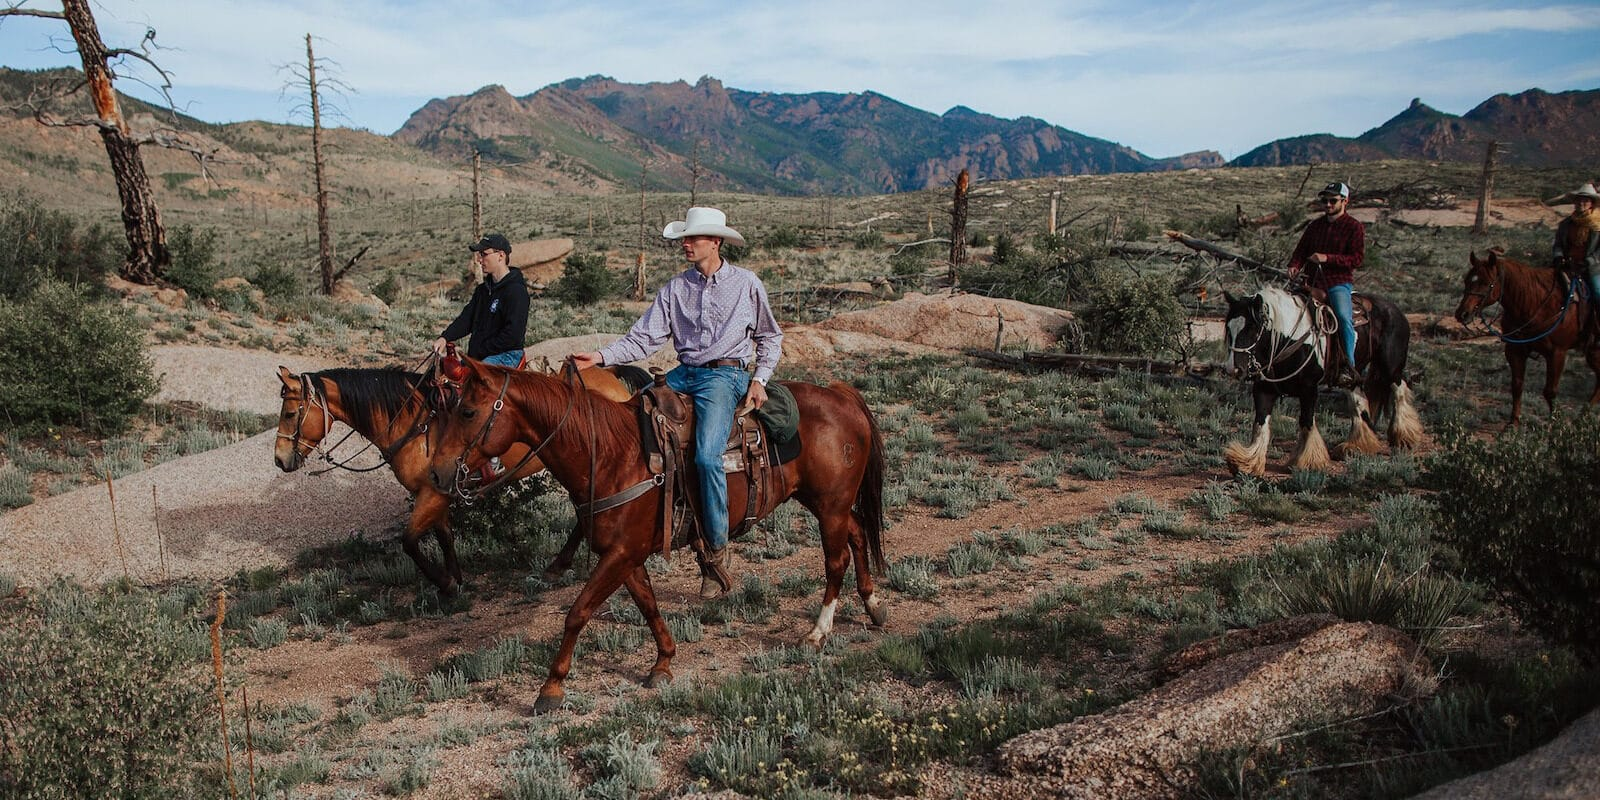 Image of people riding horses at the Lost Valley Ranch in Sedalia, Colorado